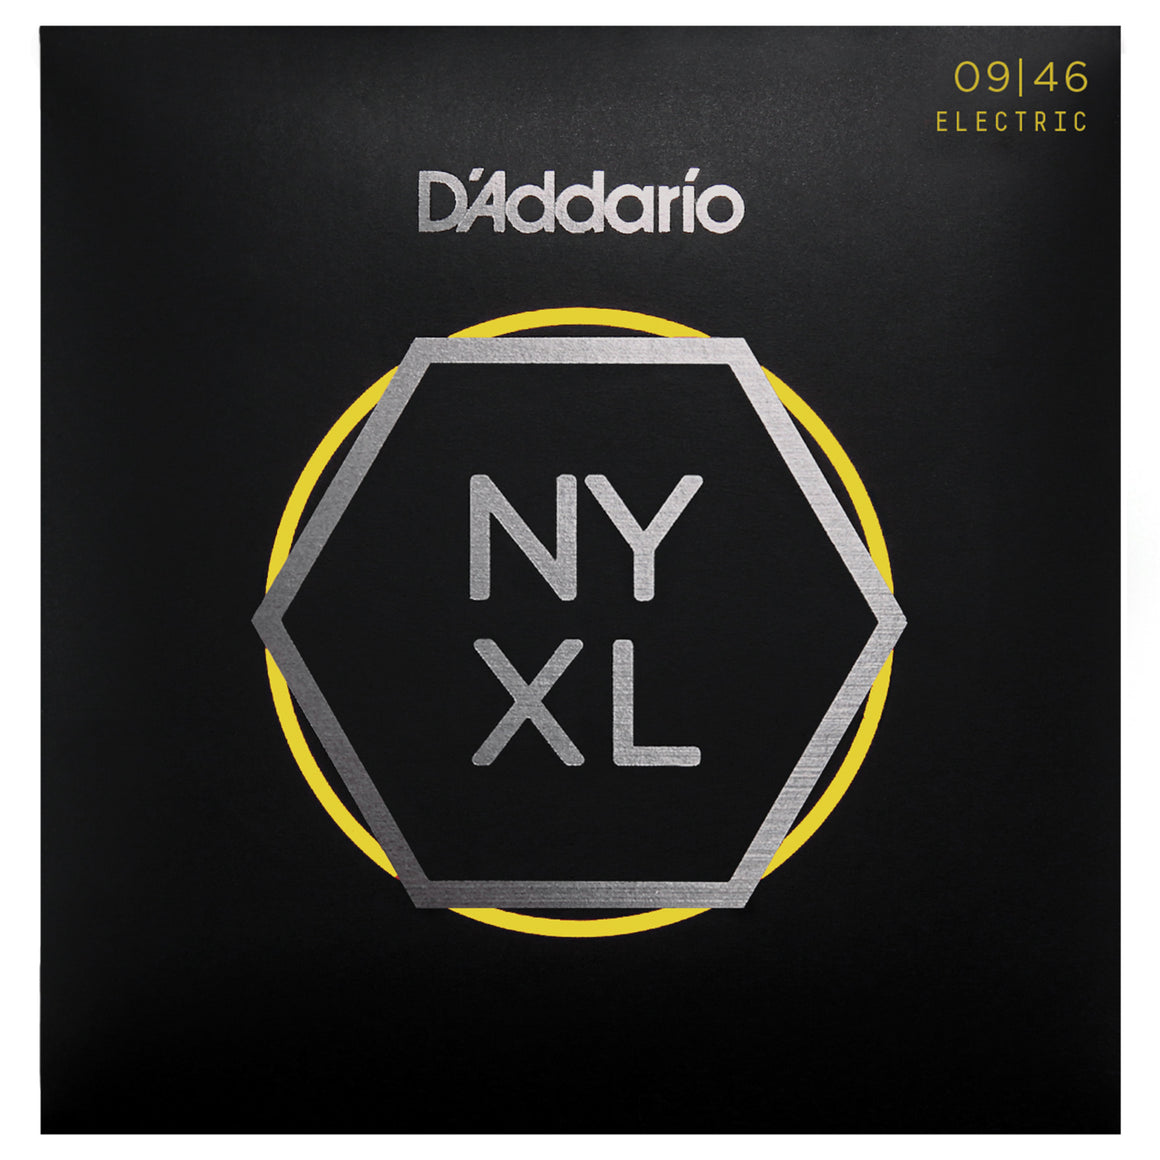 D'Addario NYXL0946 9-46 Nickel Super Light Electric Guitar Strings